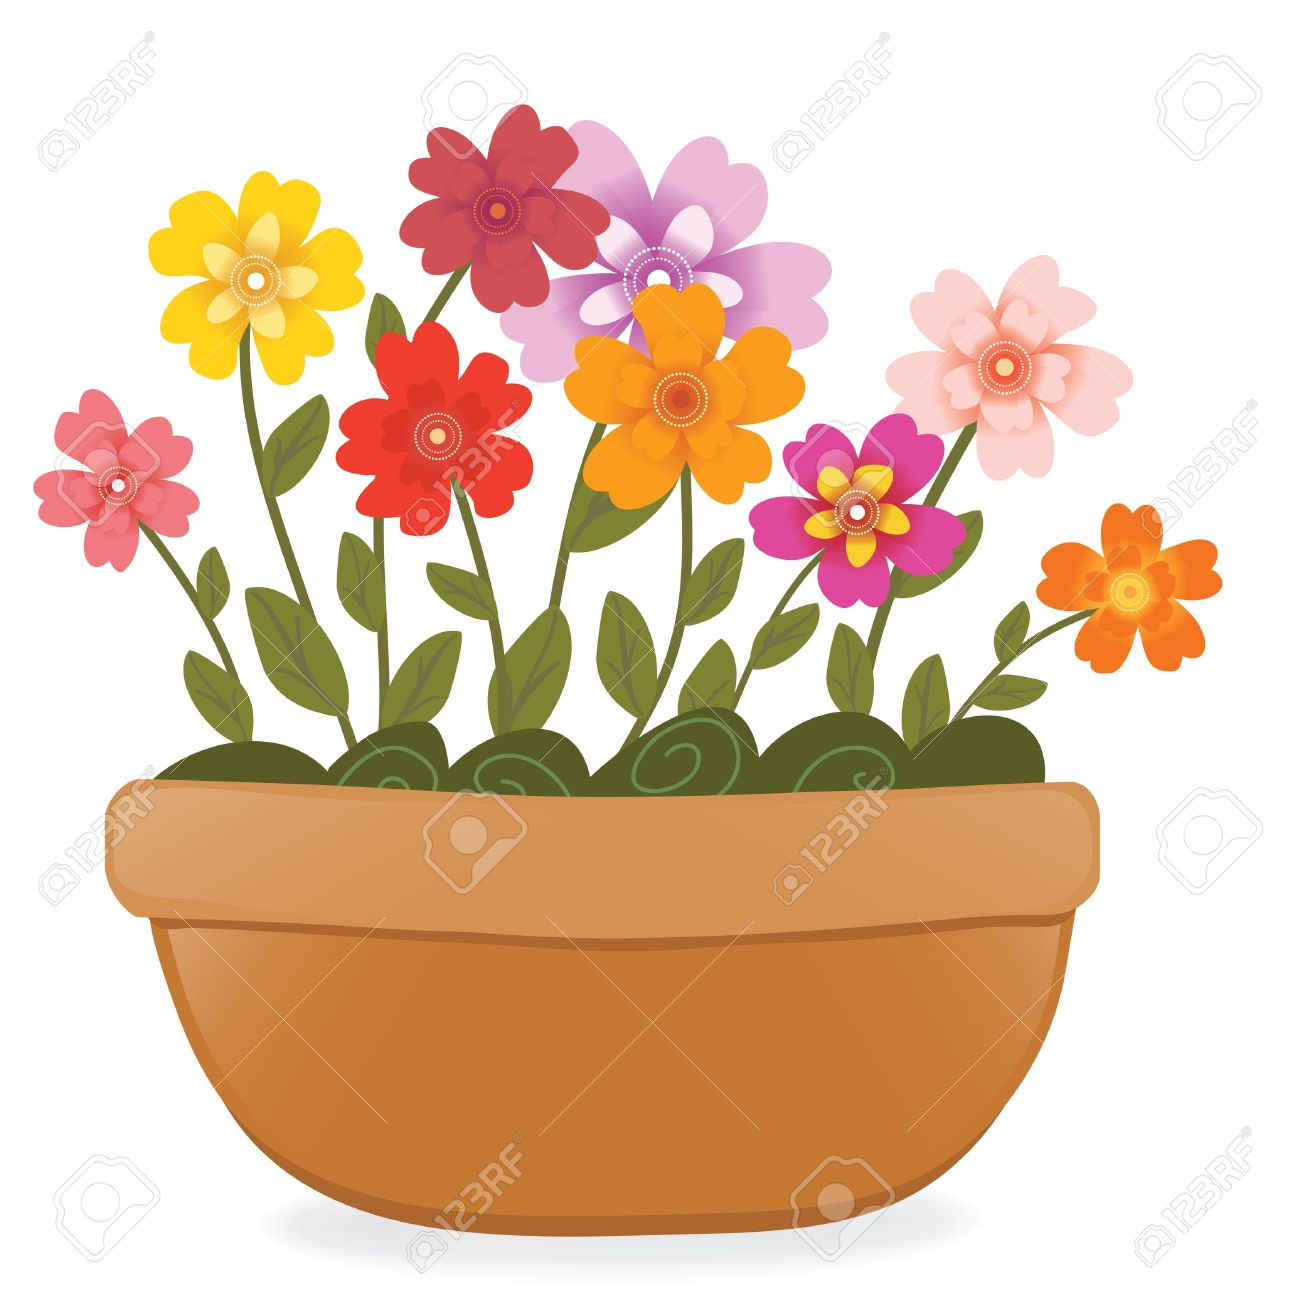 Pot Plant clipart #13, Download drawings